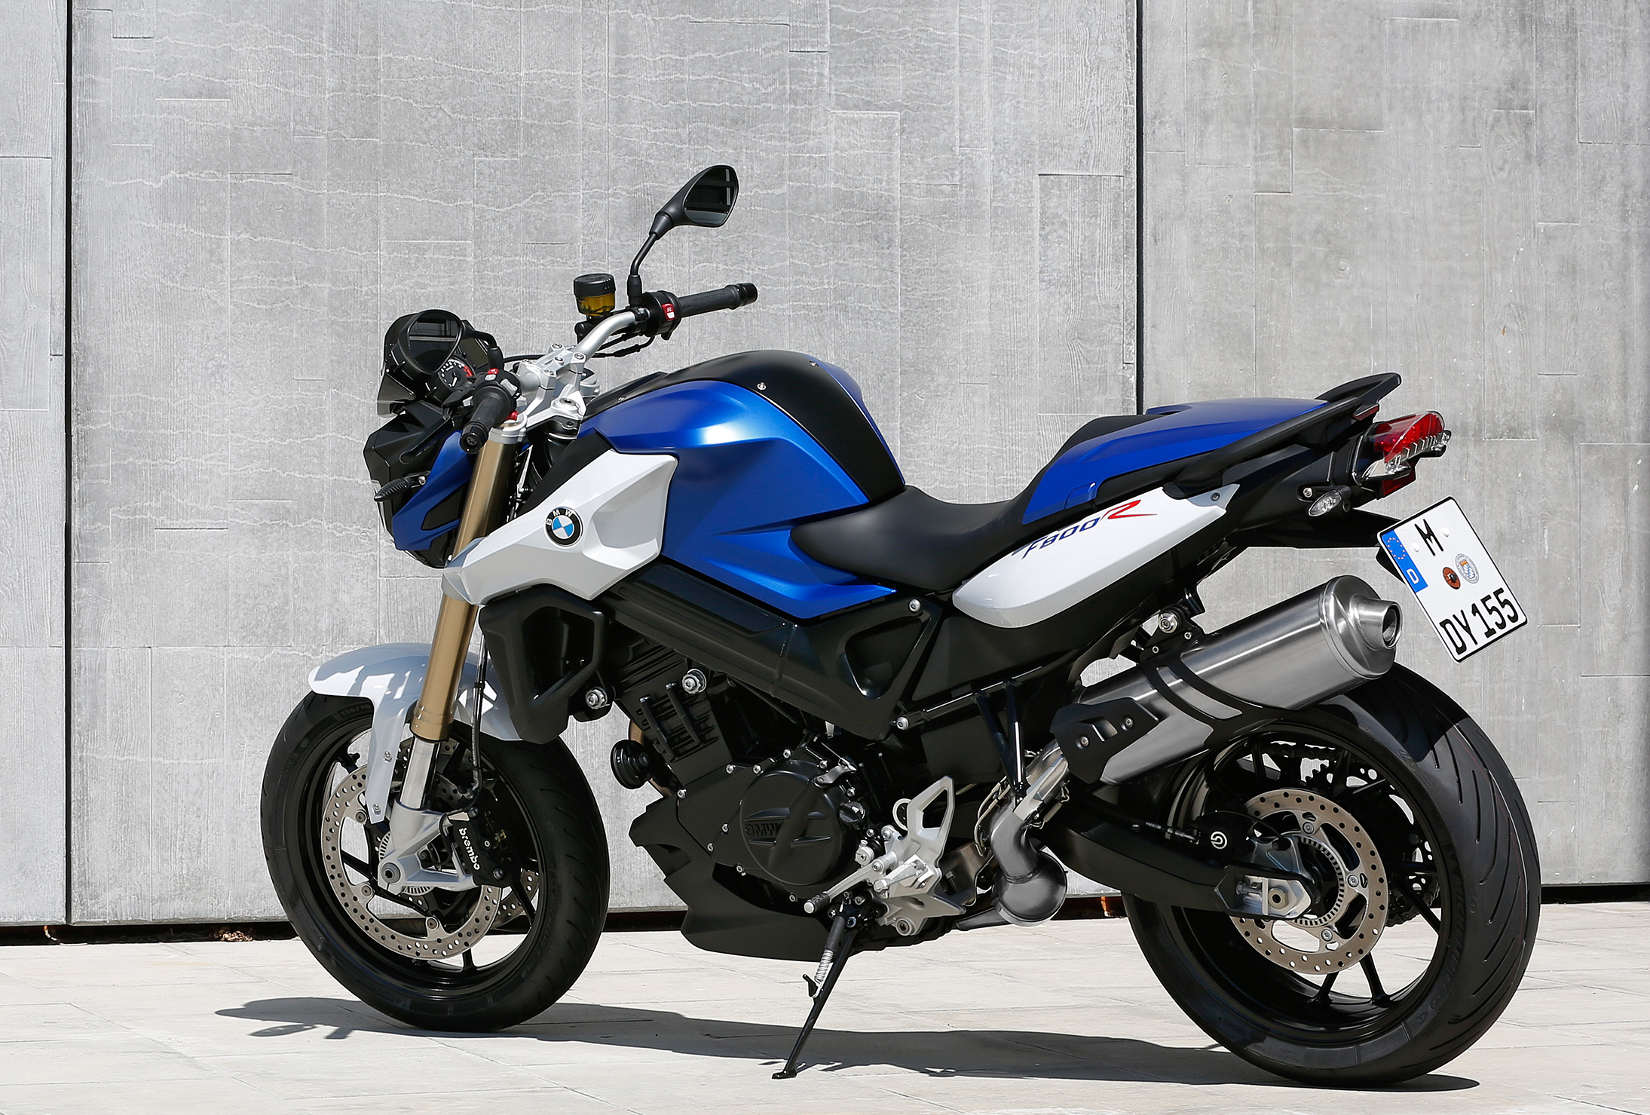 BMW Updates F 800 R For 2015 MotorcycleDaily Motorcycle News